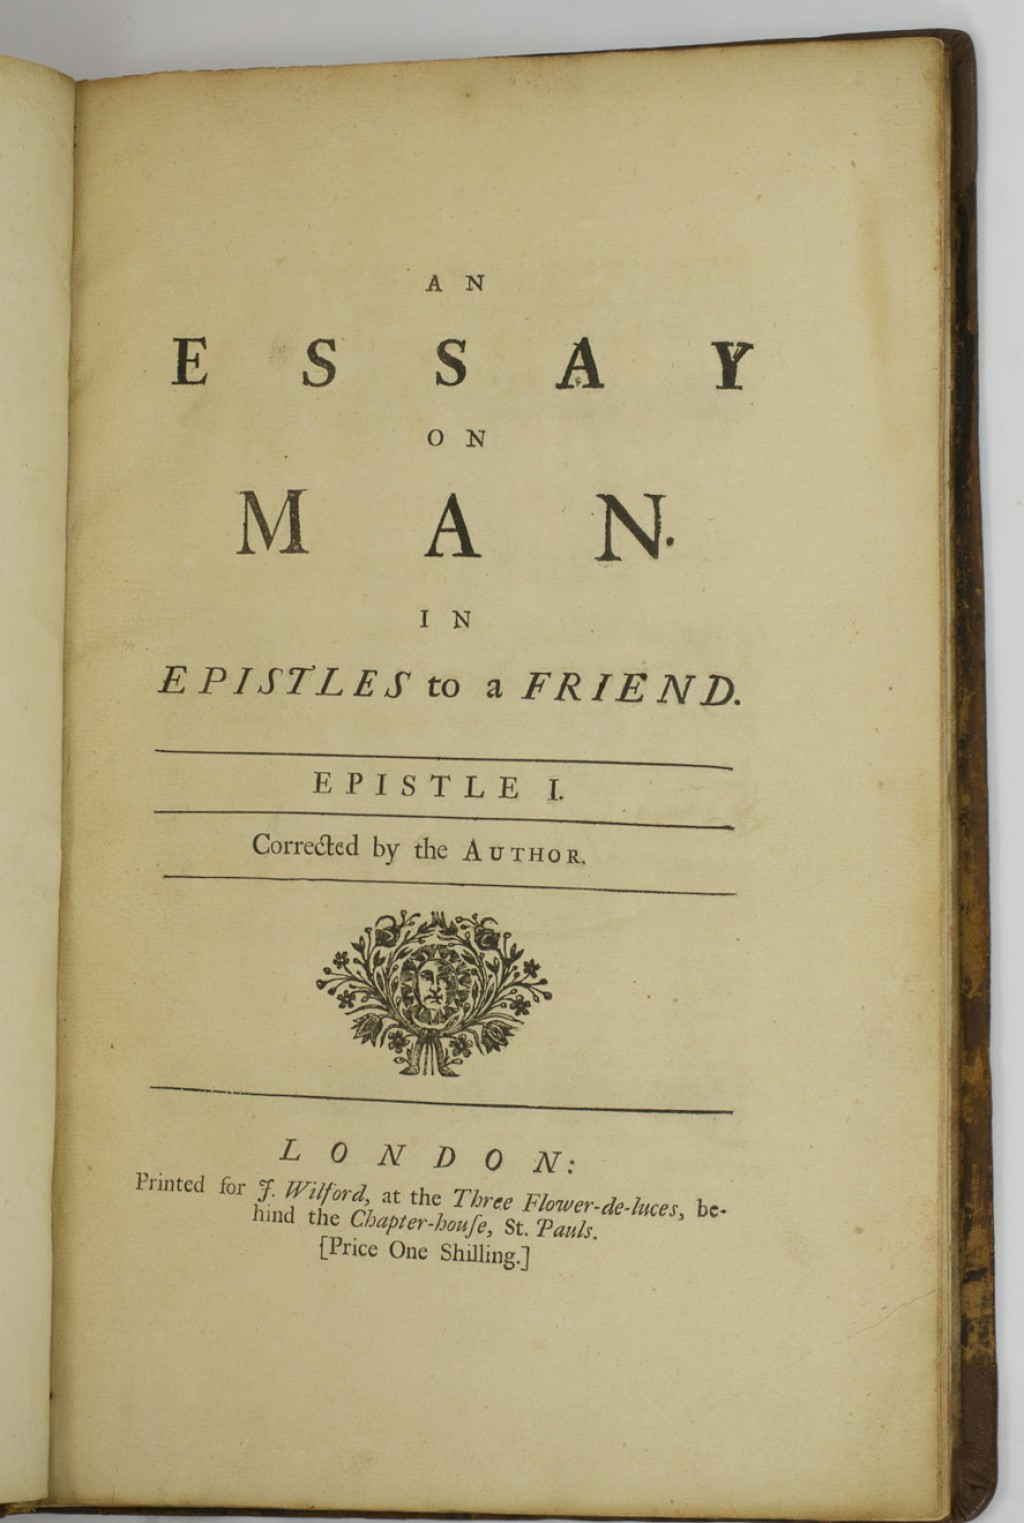 003 An Essay On Man 65395 3 Fantastic Epistle 2 Meaning Summary Sparknotes Part 1 Large